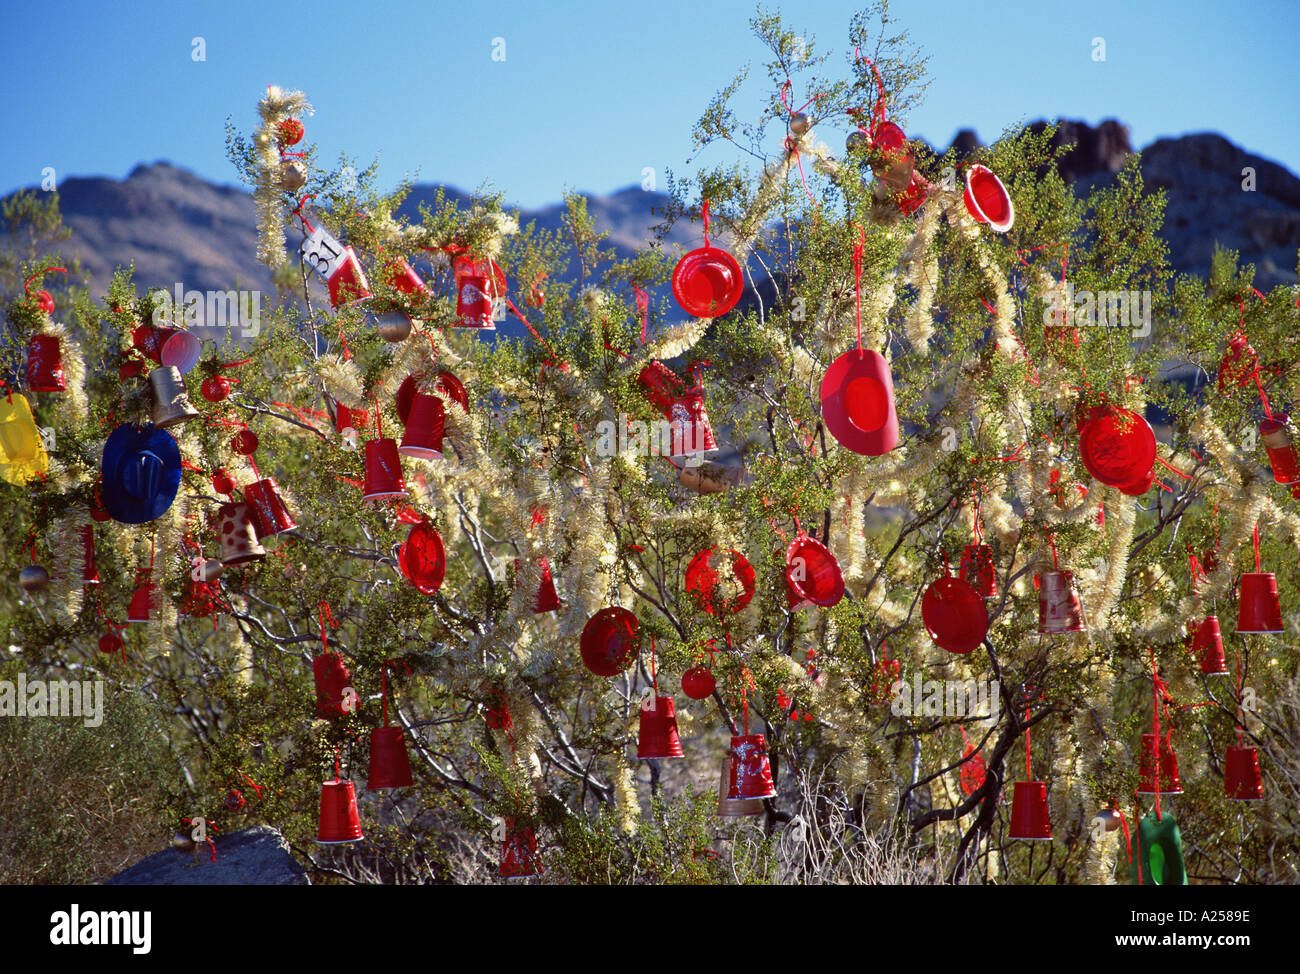 Christmas Tree In The Desert.Close Up Of Decorations On Desert Christmas Tree Arizona Usa